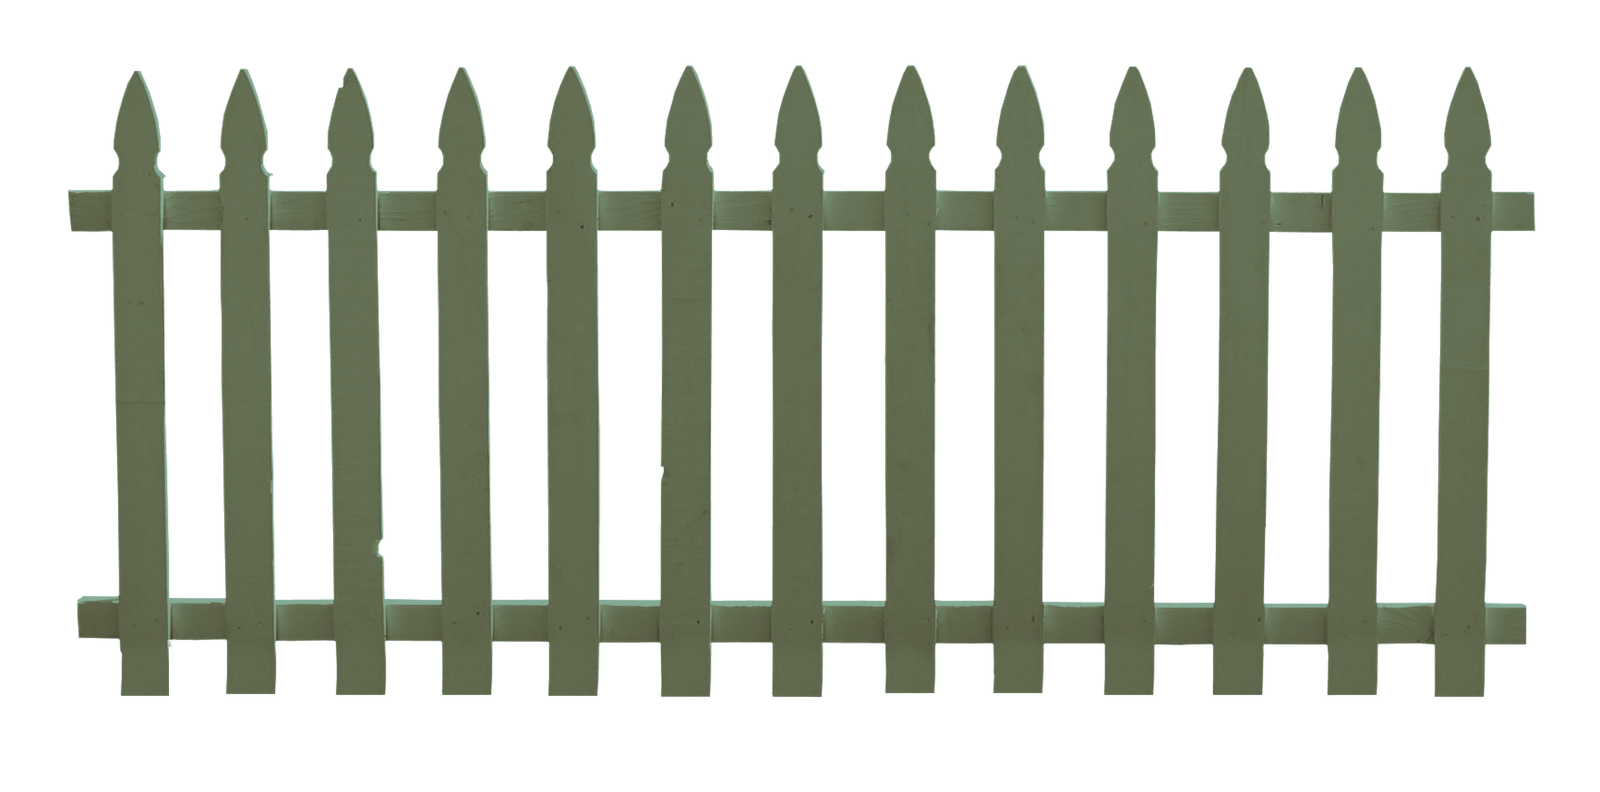 Png transparent hd images. Fence clipart bamboo fence